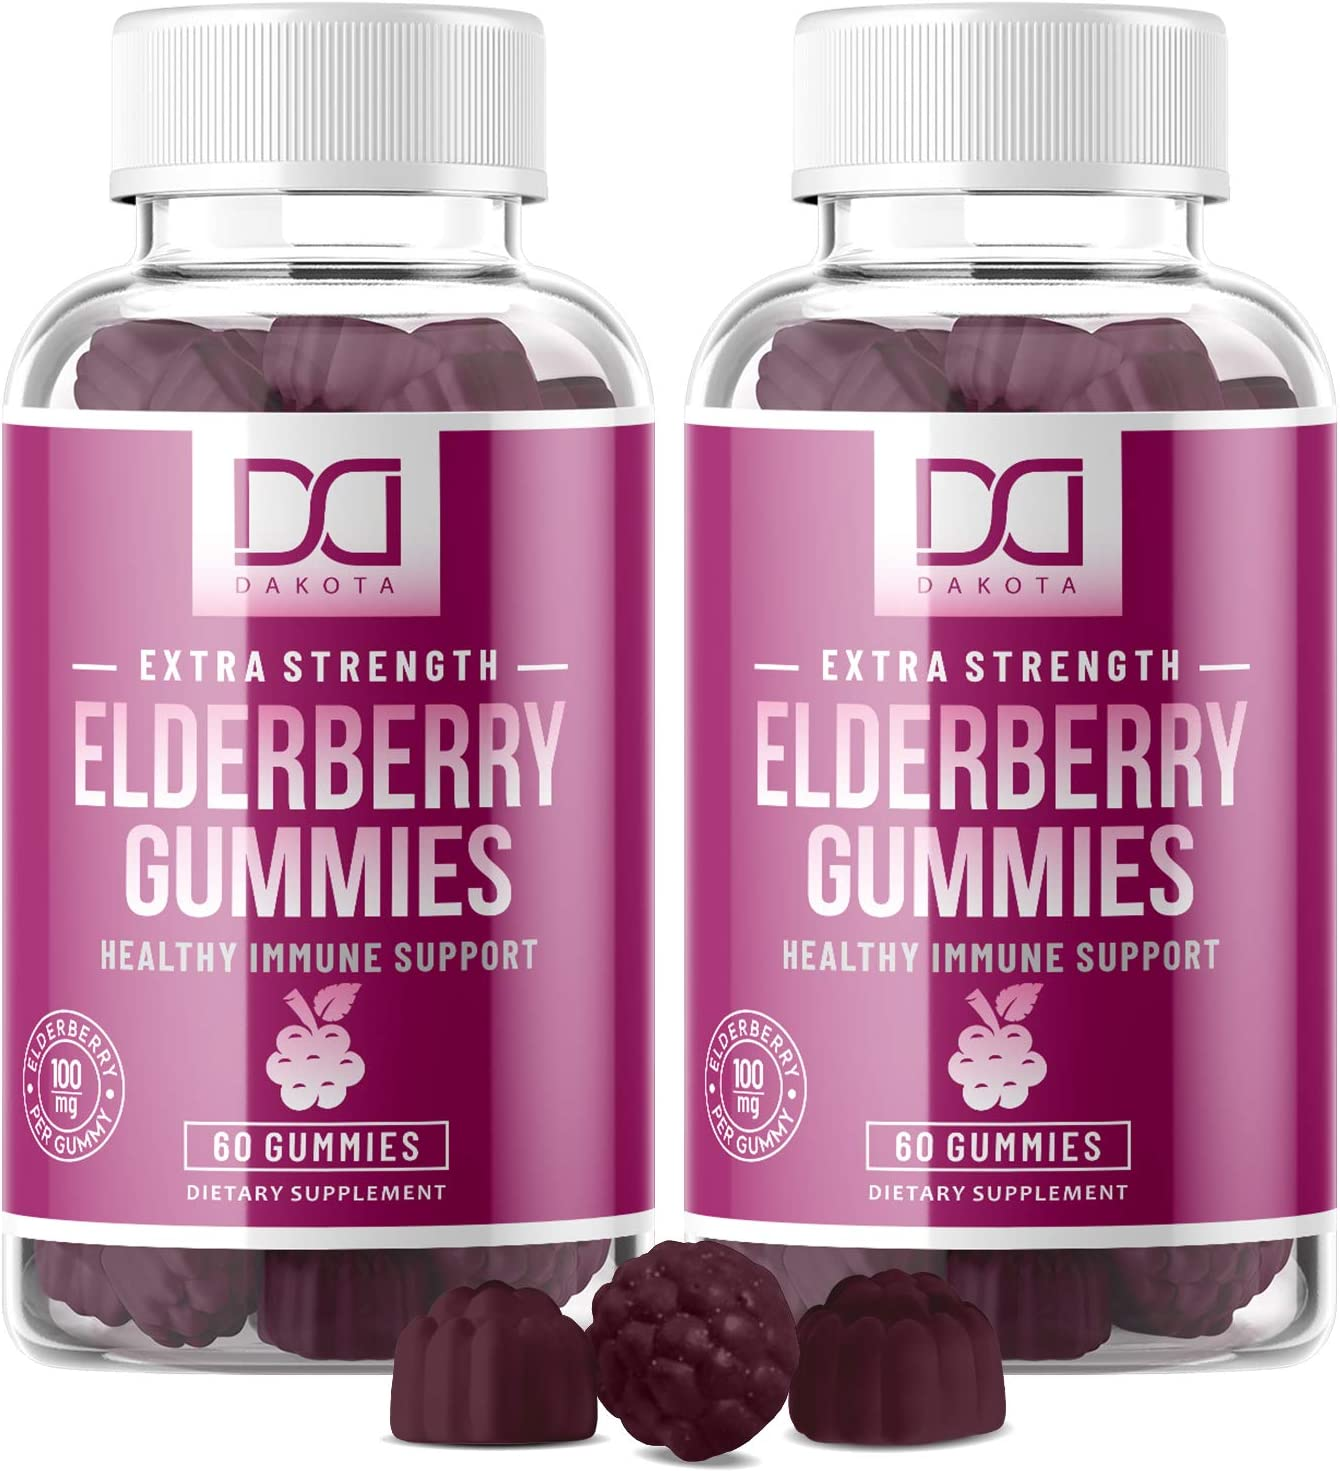 Elderberry Gummies with Zinc, Vitamin C for Adults, Kids for Immune Support Booster Supplement – Organic Sambucus Black Elderberry Extract – Top Alternative to Capsules, Syrup, Pills, Tea 2 Pack